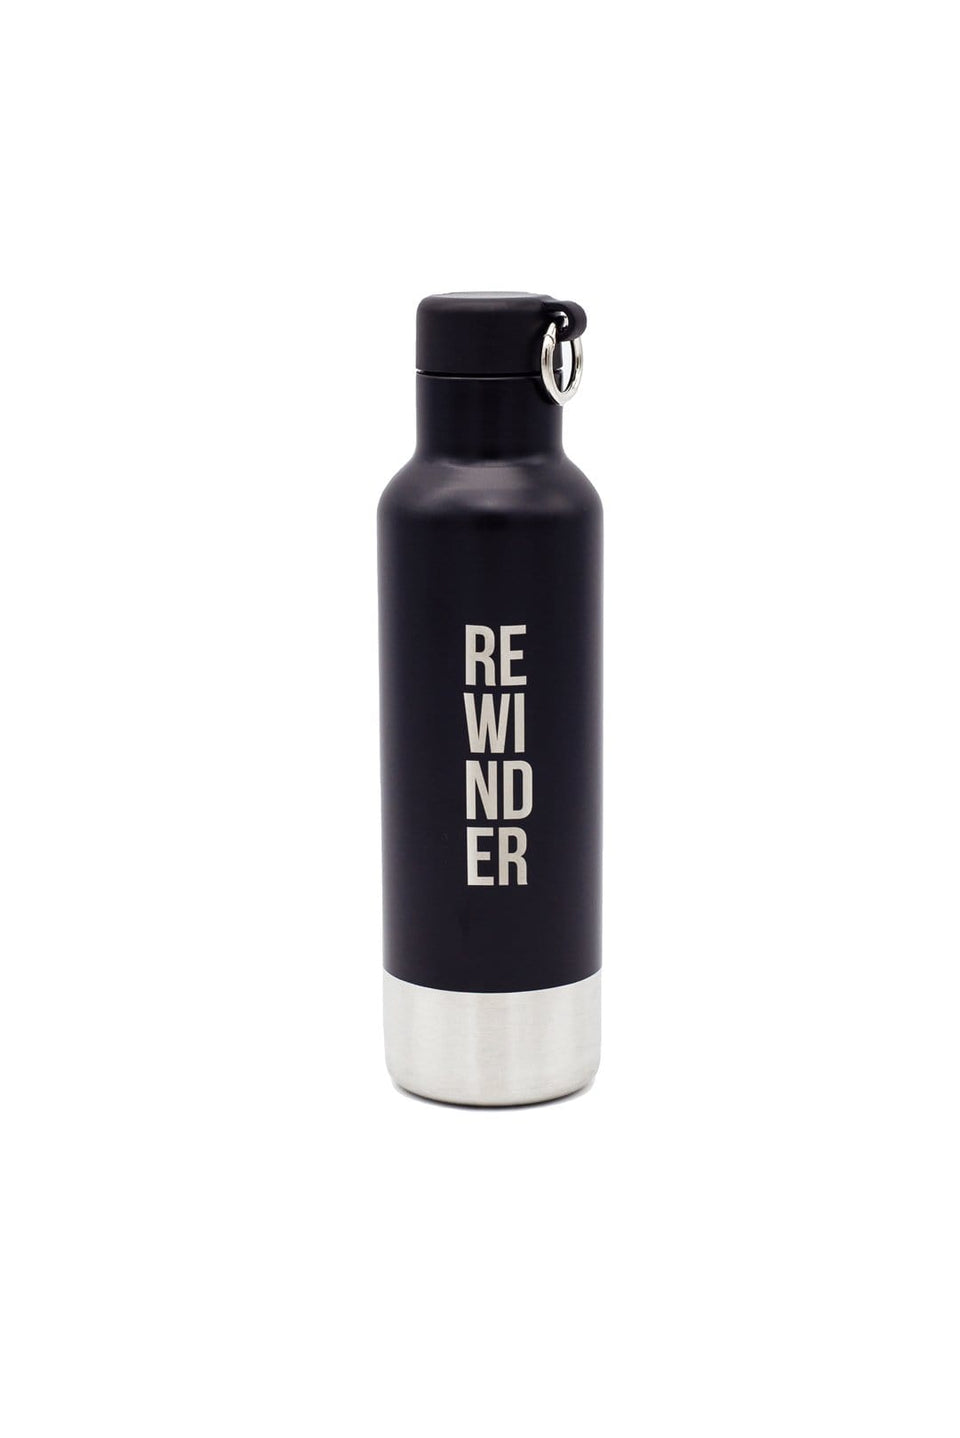 Rewinder Reusable Inox Bottle Reusable Bottle Inox Rewinder City Black Eco Zero Waste